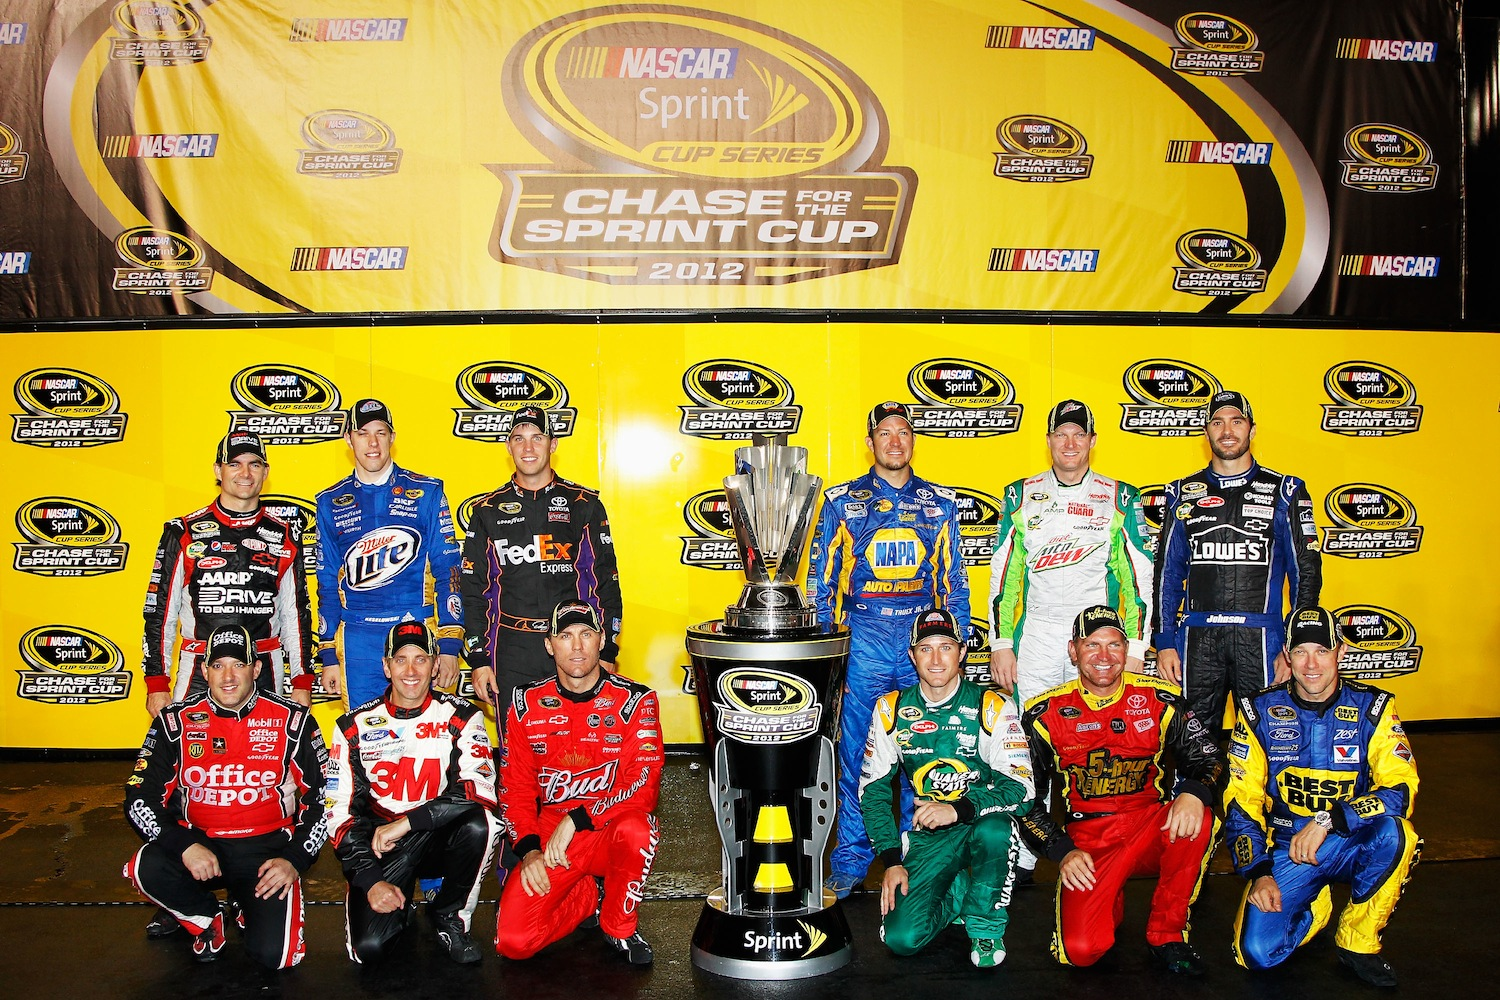 superbowl latest odds nascar fantasy tips